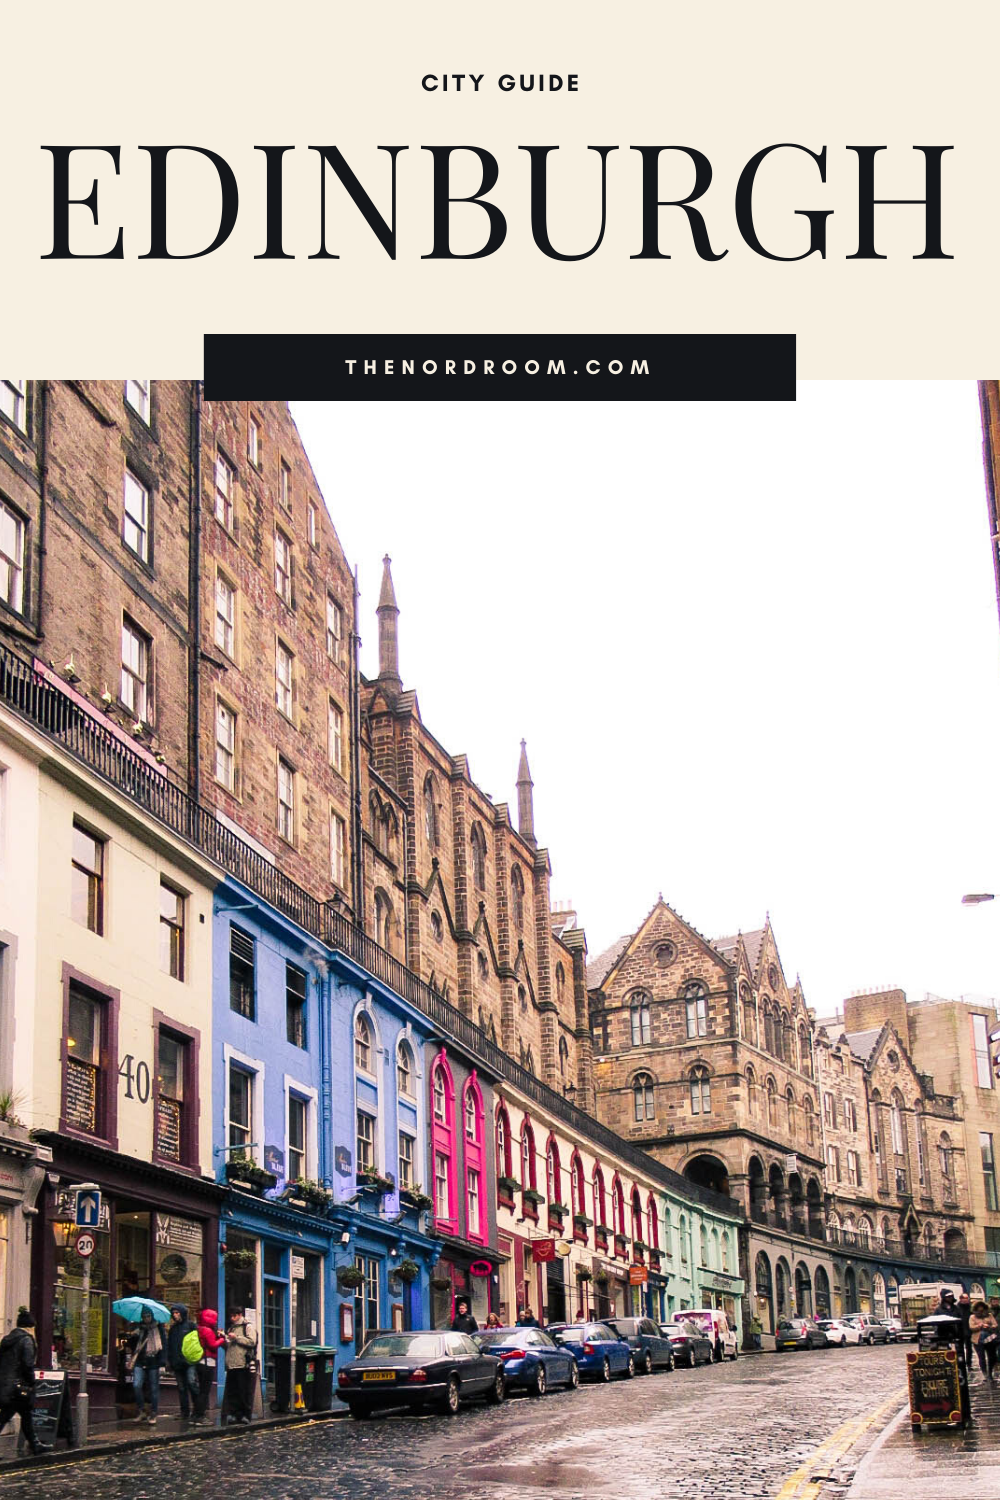 City Guide Edinburgh by The Nordroom